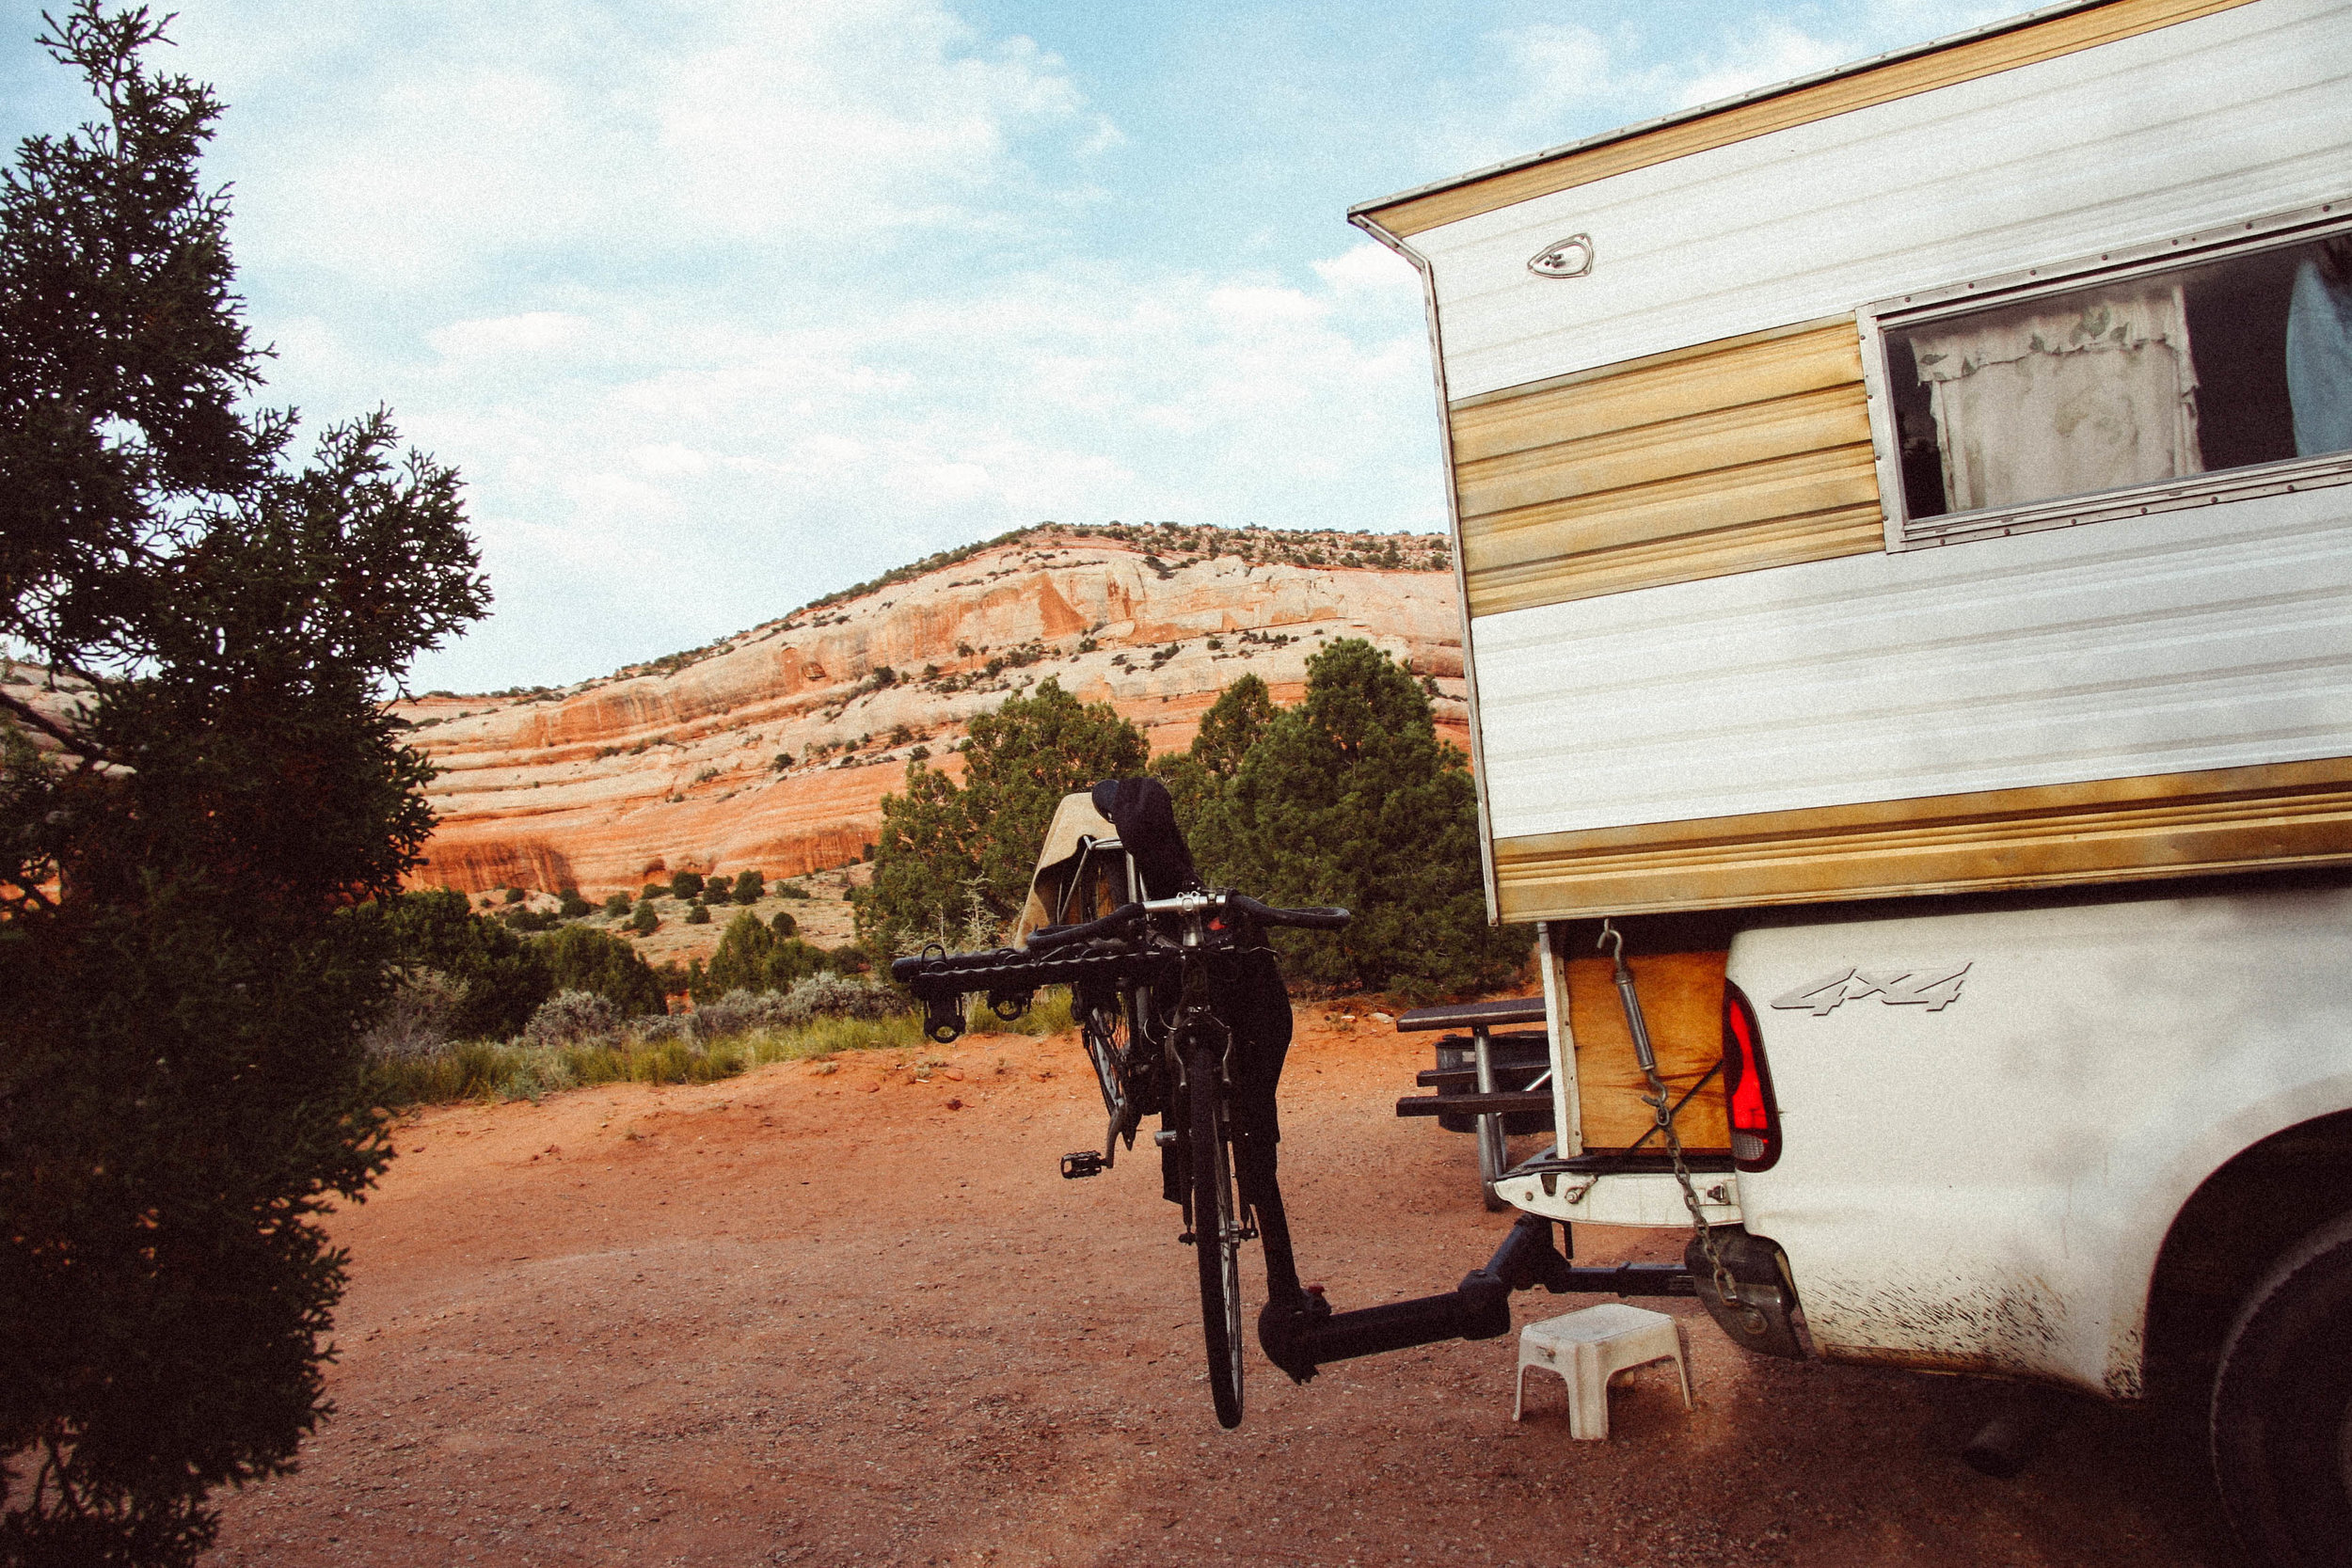 The camper truck/home camped by Utah Juniper,  Juniperus osteosperma ( Cupressaceae) and Two-needled Pinon Pine,  Pinus edulis  (Pinaceae) near Canyonlands National Part, Utah.  The bike rack makes for a good place to hang drying clothes.